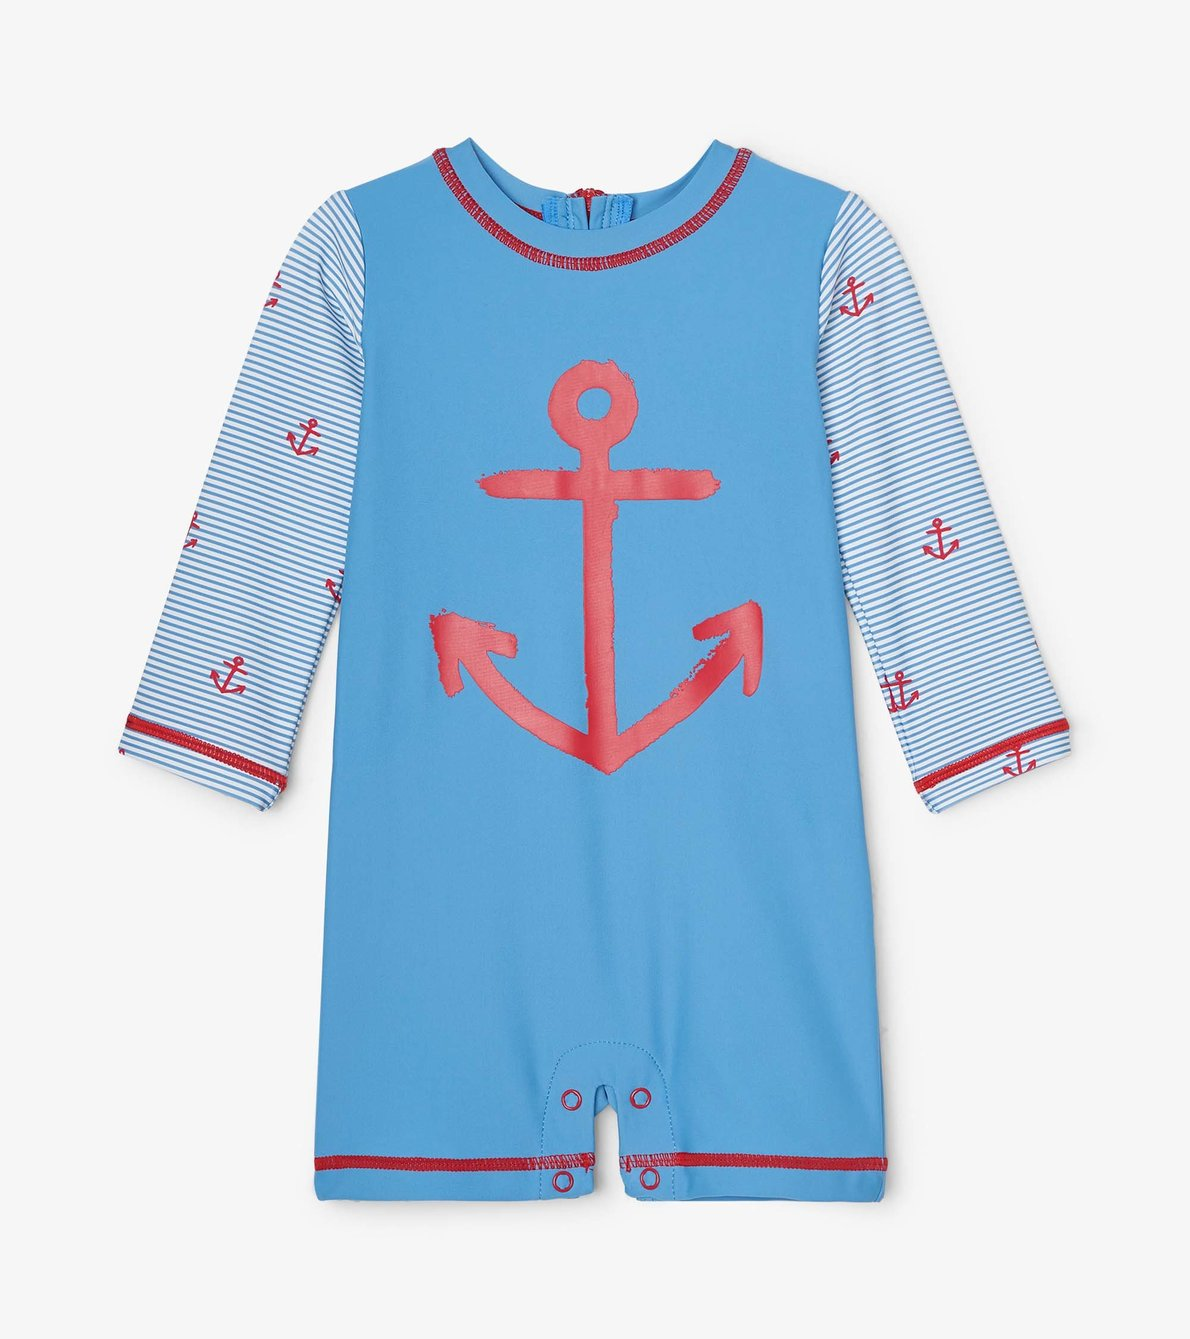 View larger image of Red Anchors Baby One-Piece Rashguard